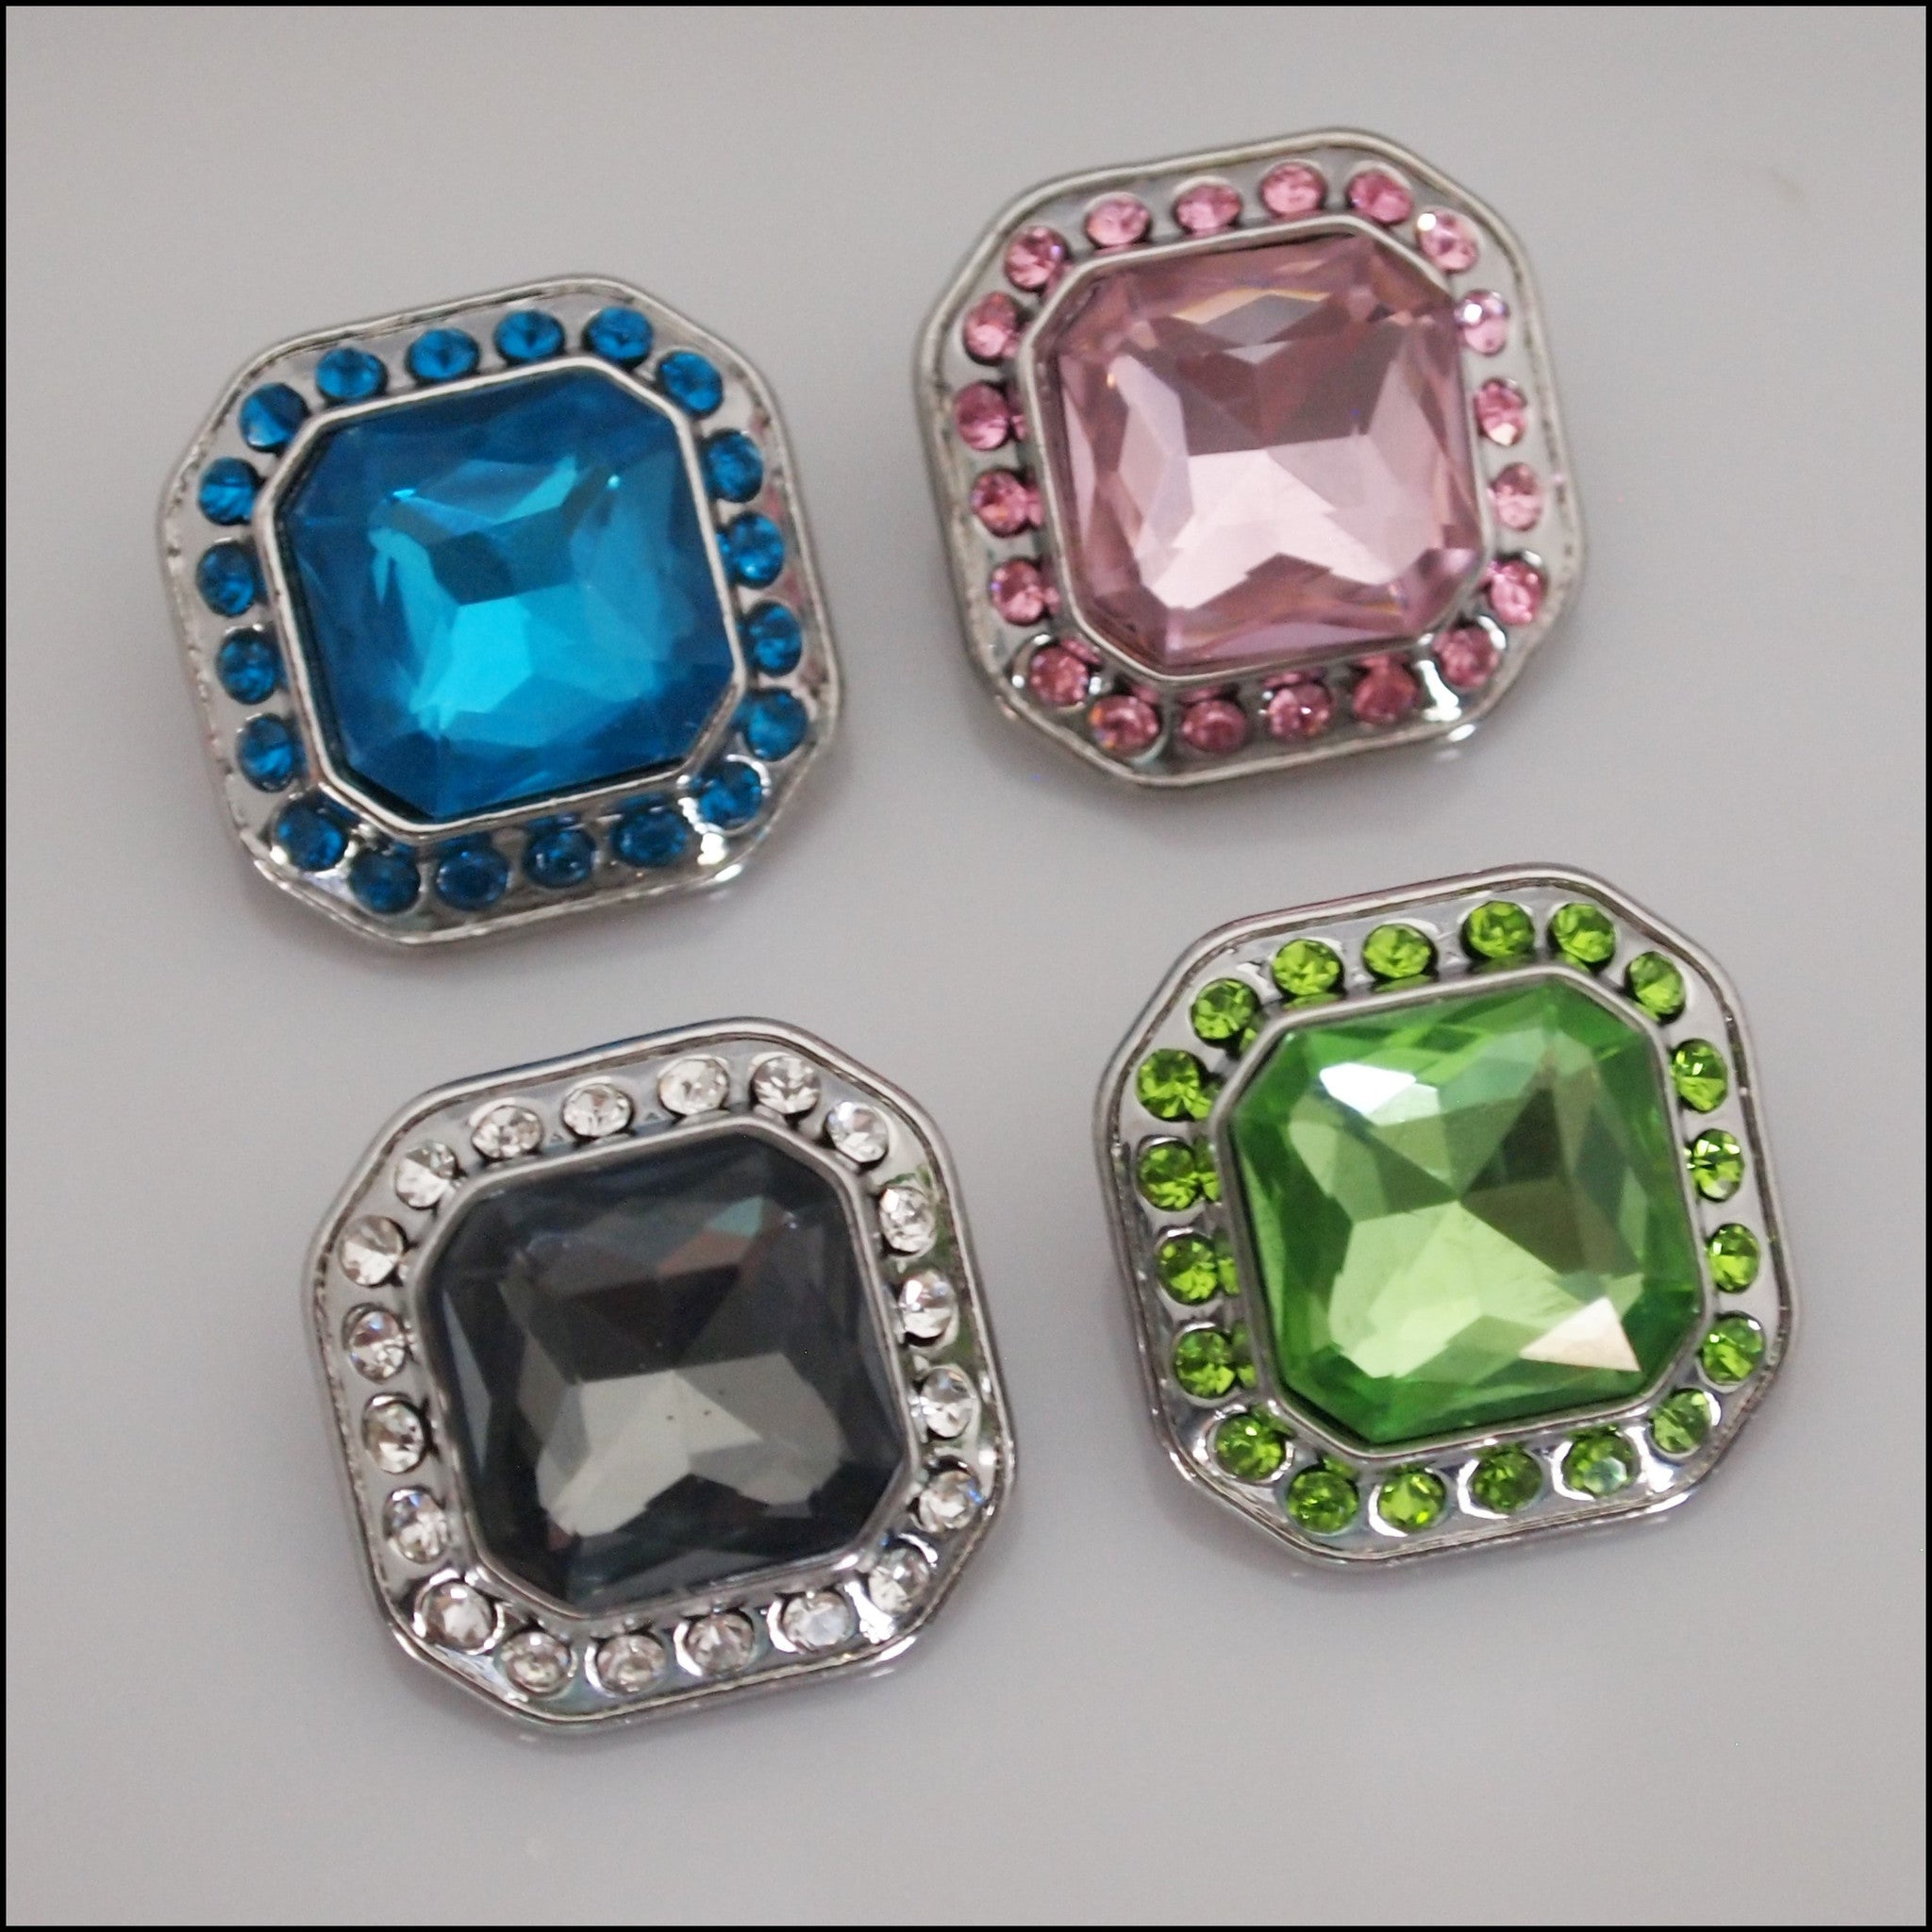 Deluxe Square Crystal Snap Button - Find Something Special